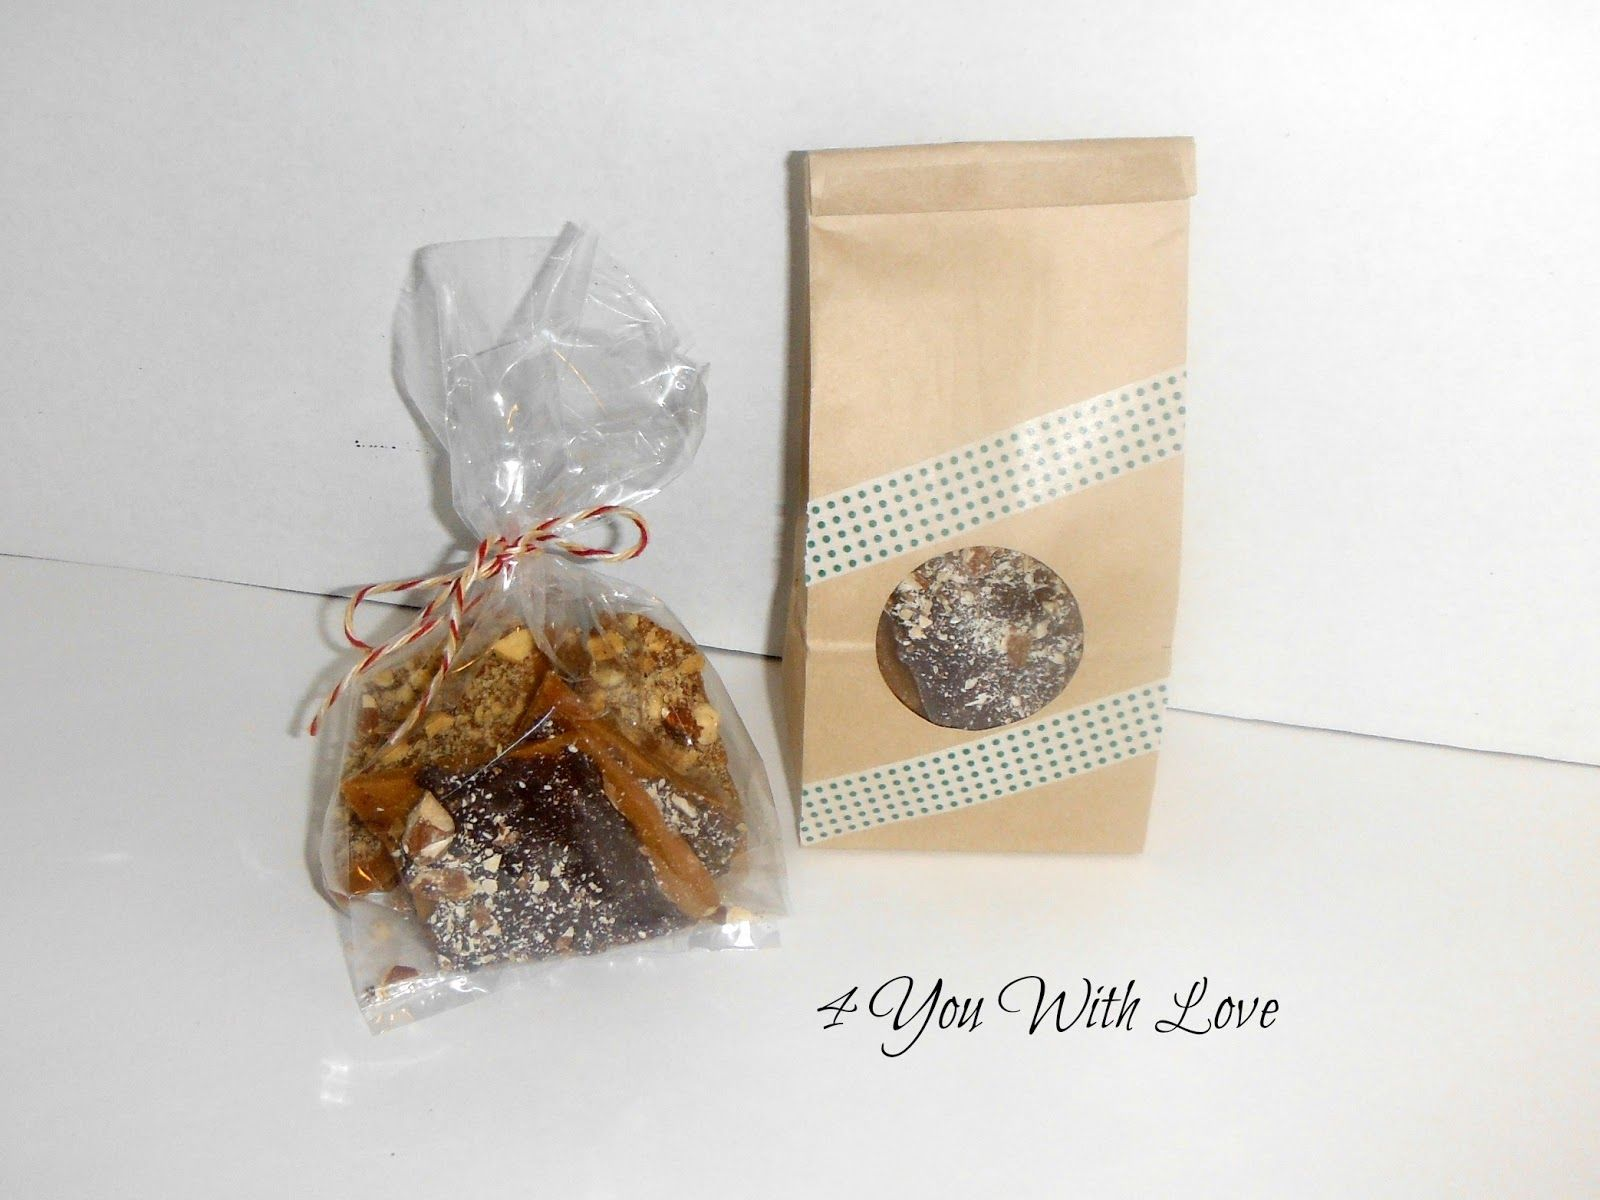 4 You With Love: English Toffee - It's Easier Than You Think